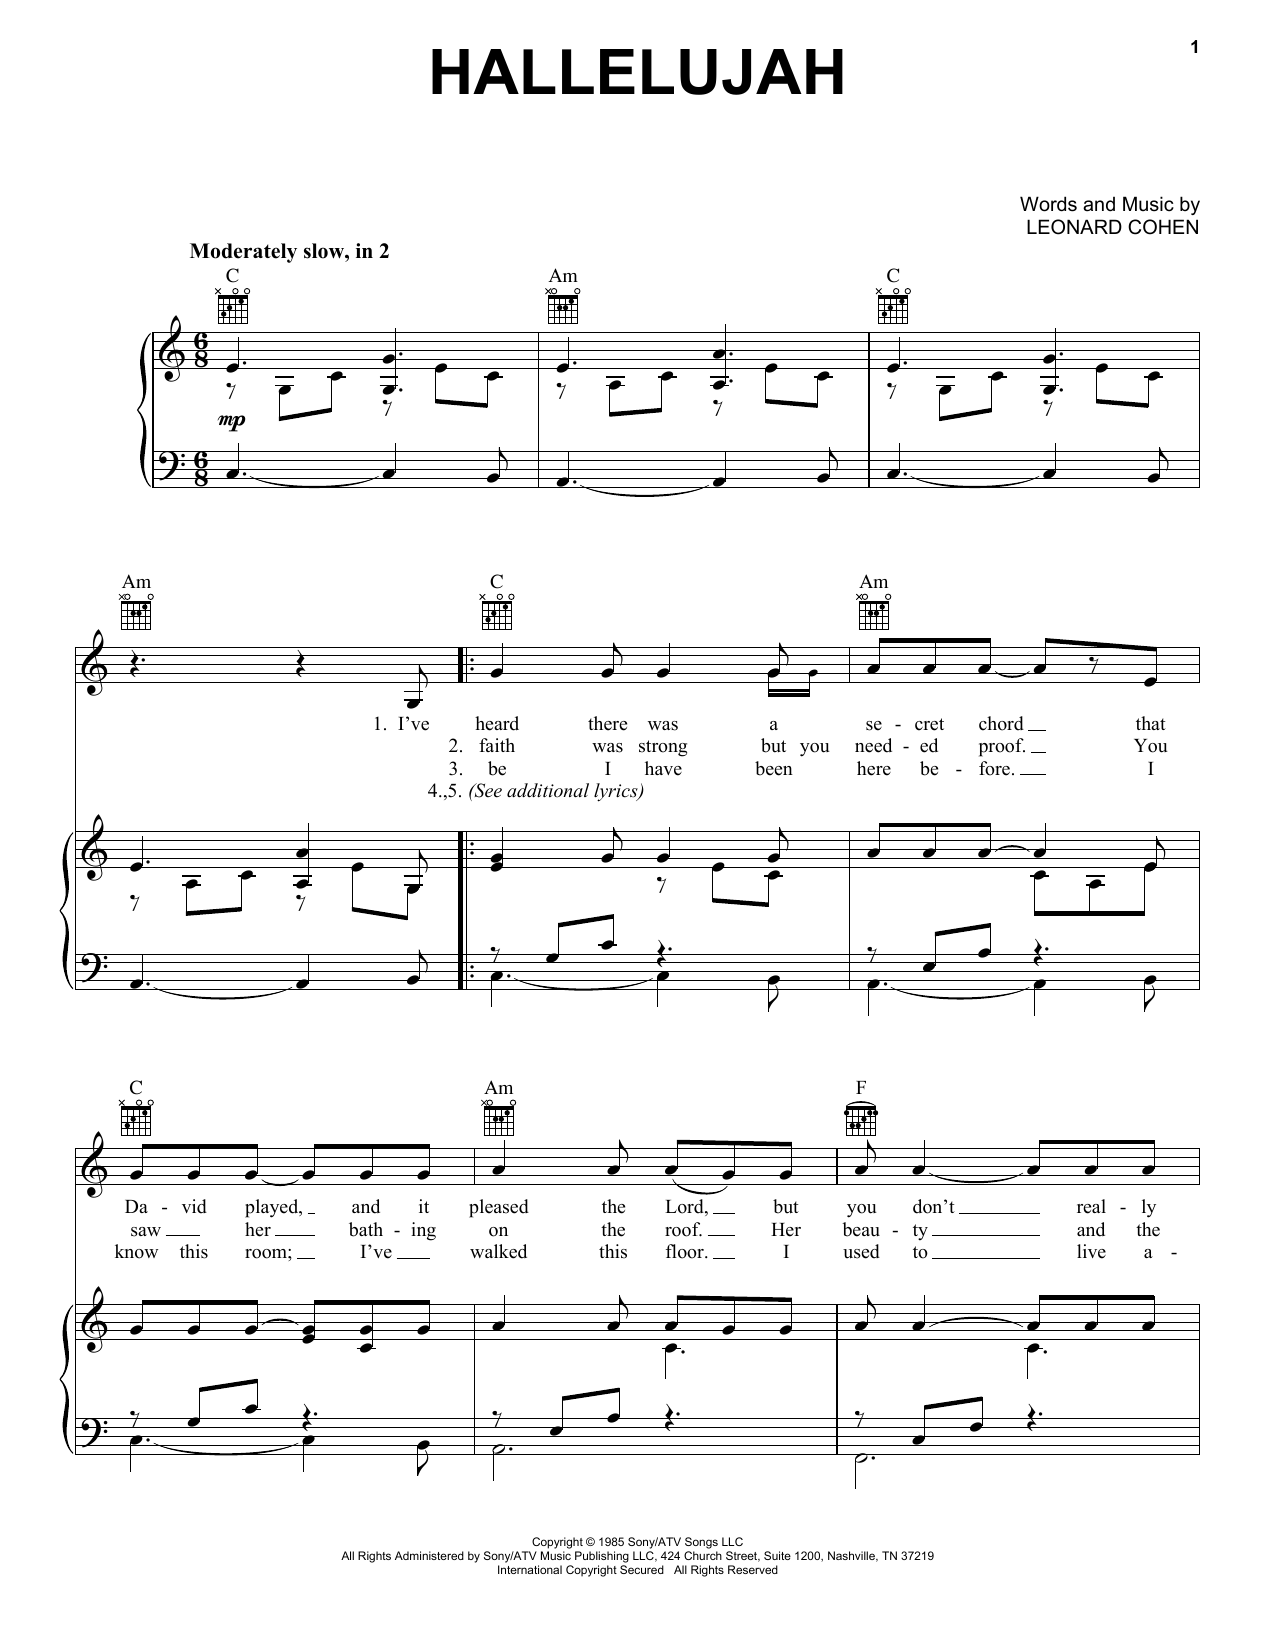 Hallelujah : Sheet Music Direct